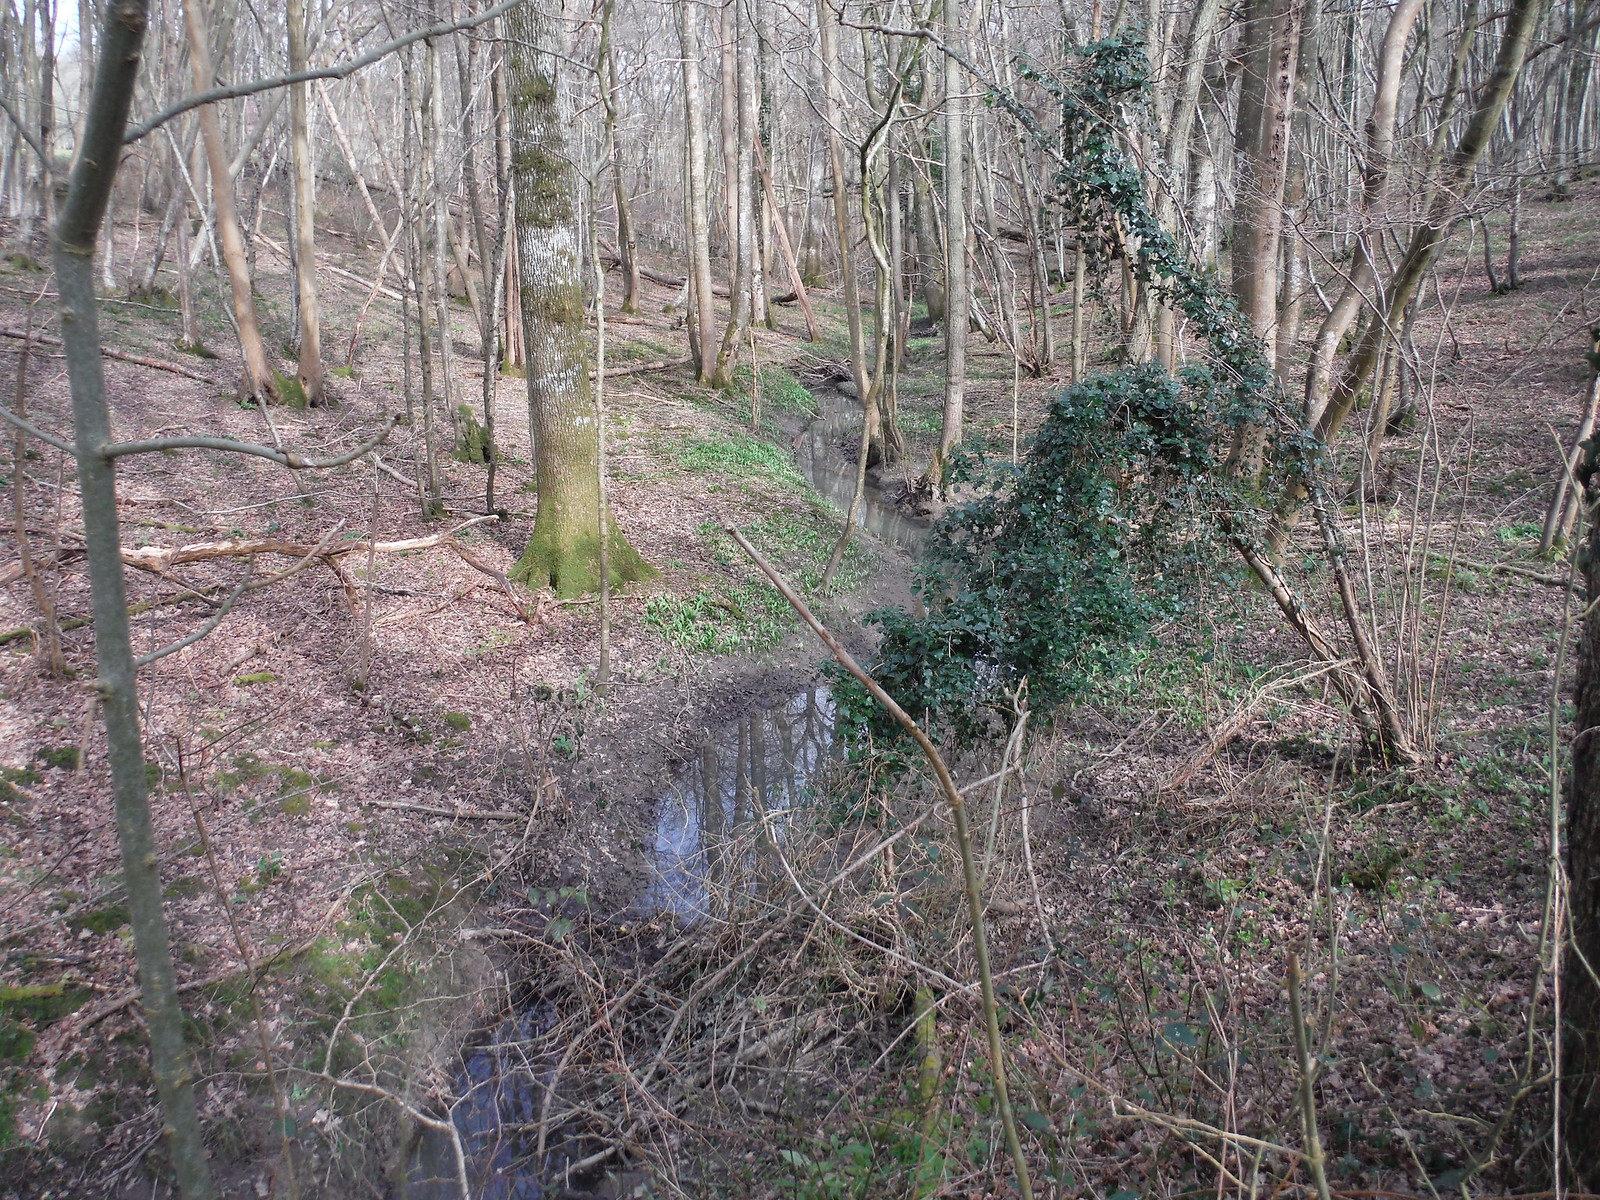 Stream in wood on grounds of East Sussex National Golf Course SWC Walk 262 Uckfield to Buxted